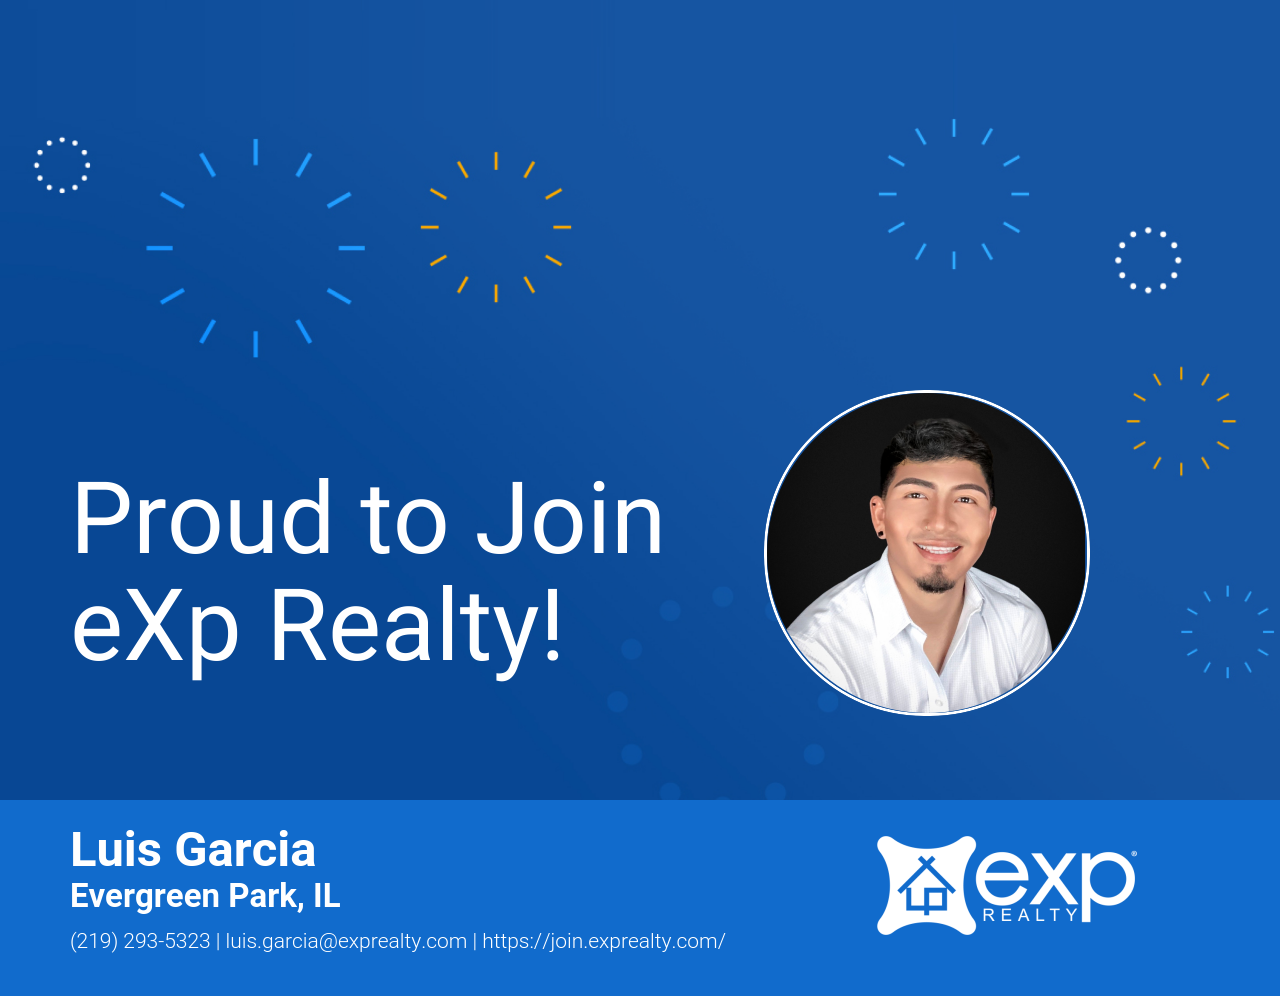 eXp Realty Welcomes Luis Garcia!